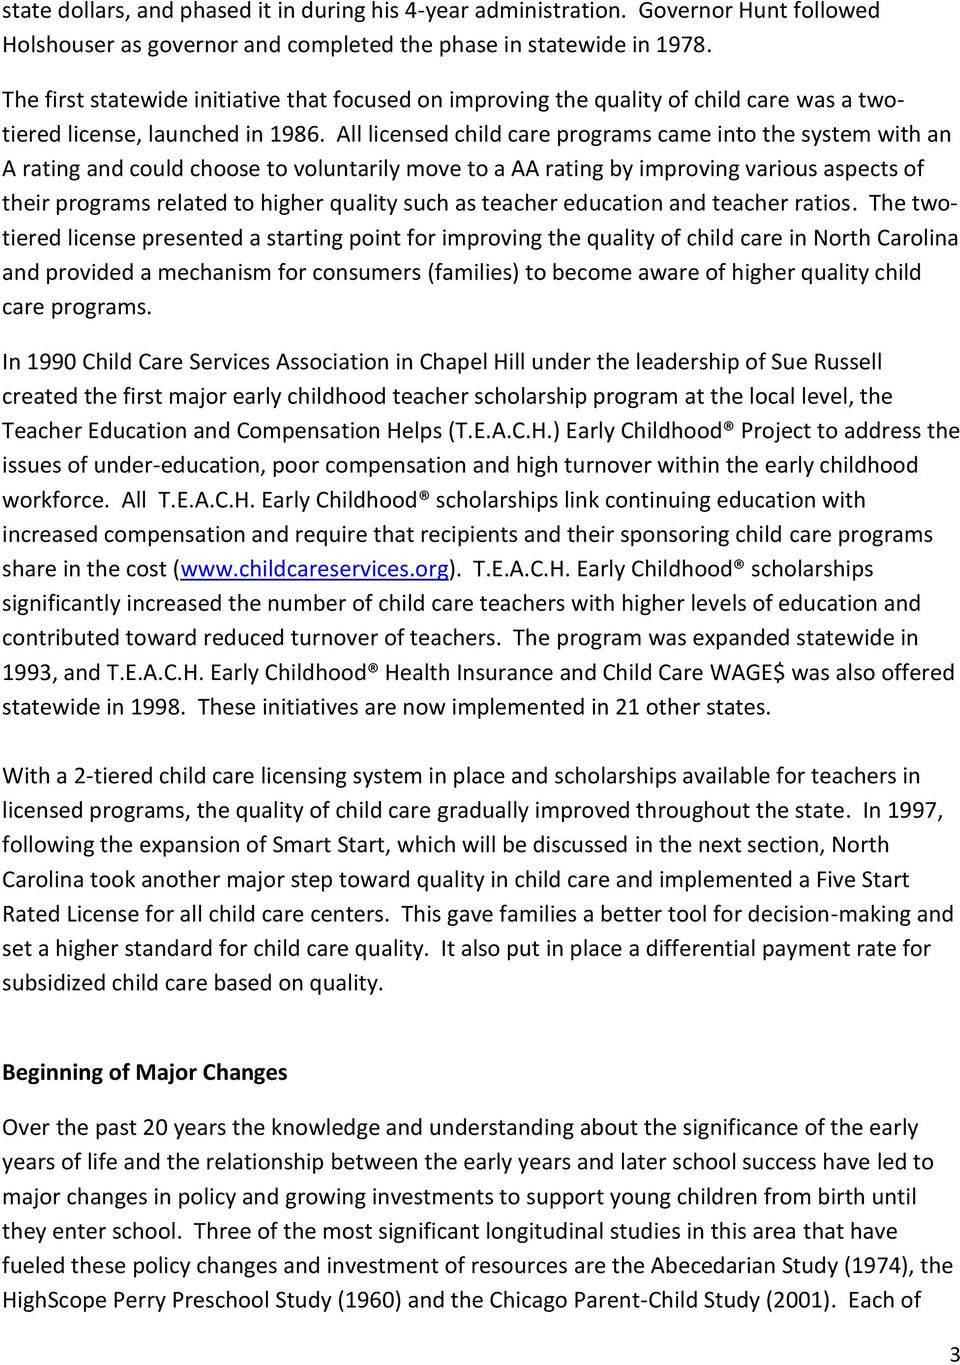 All licensed child care programs came into the system with an A rating and could choose to voluntarily move to a AA rating by improving various aspects of their programs related to higher quality